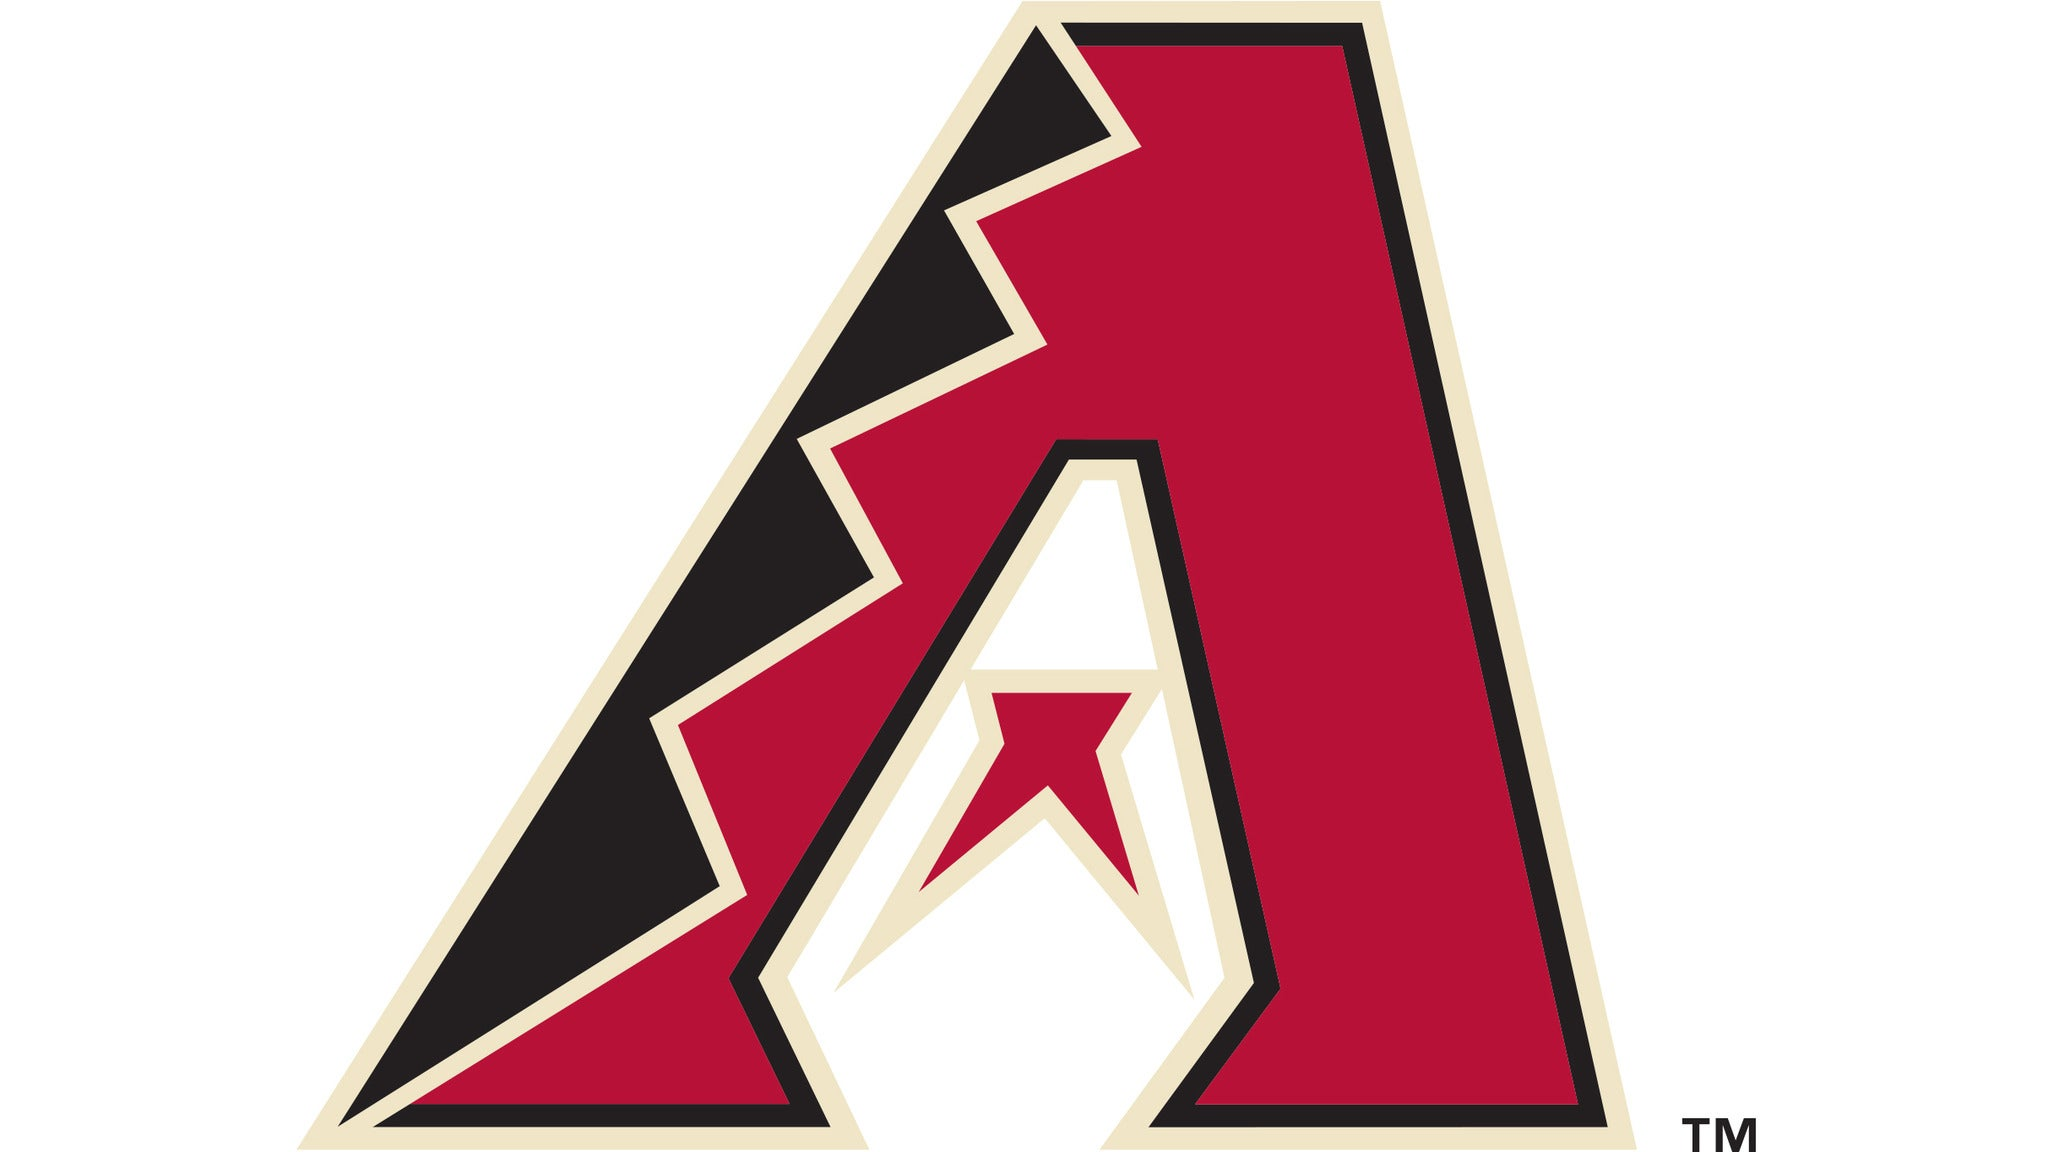 Arizona Diamondbacks vs. Washington Nationals at Chase Field